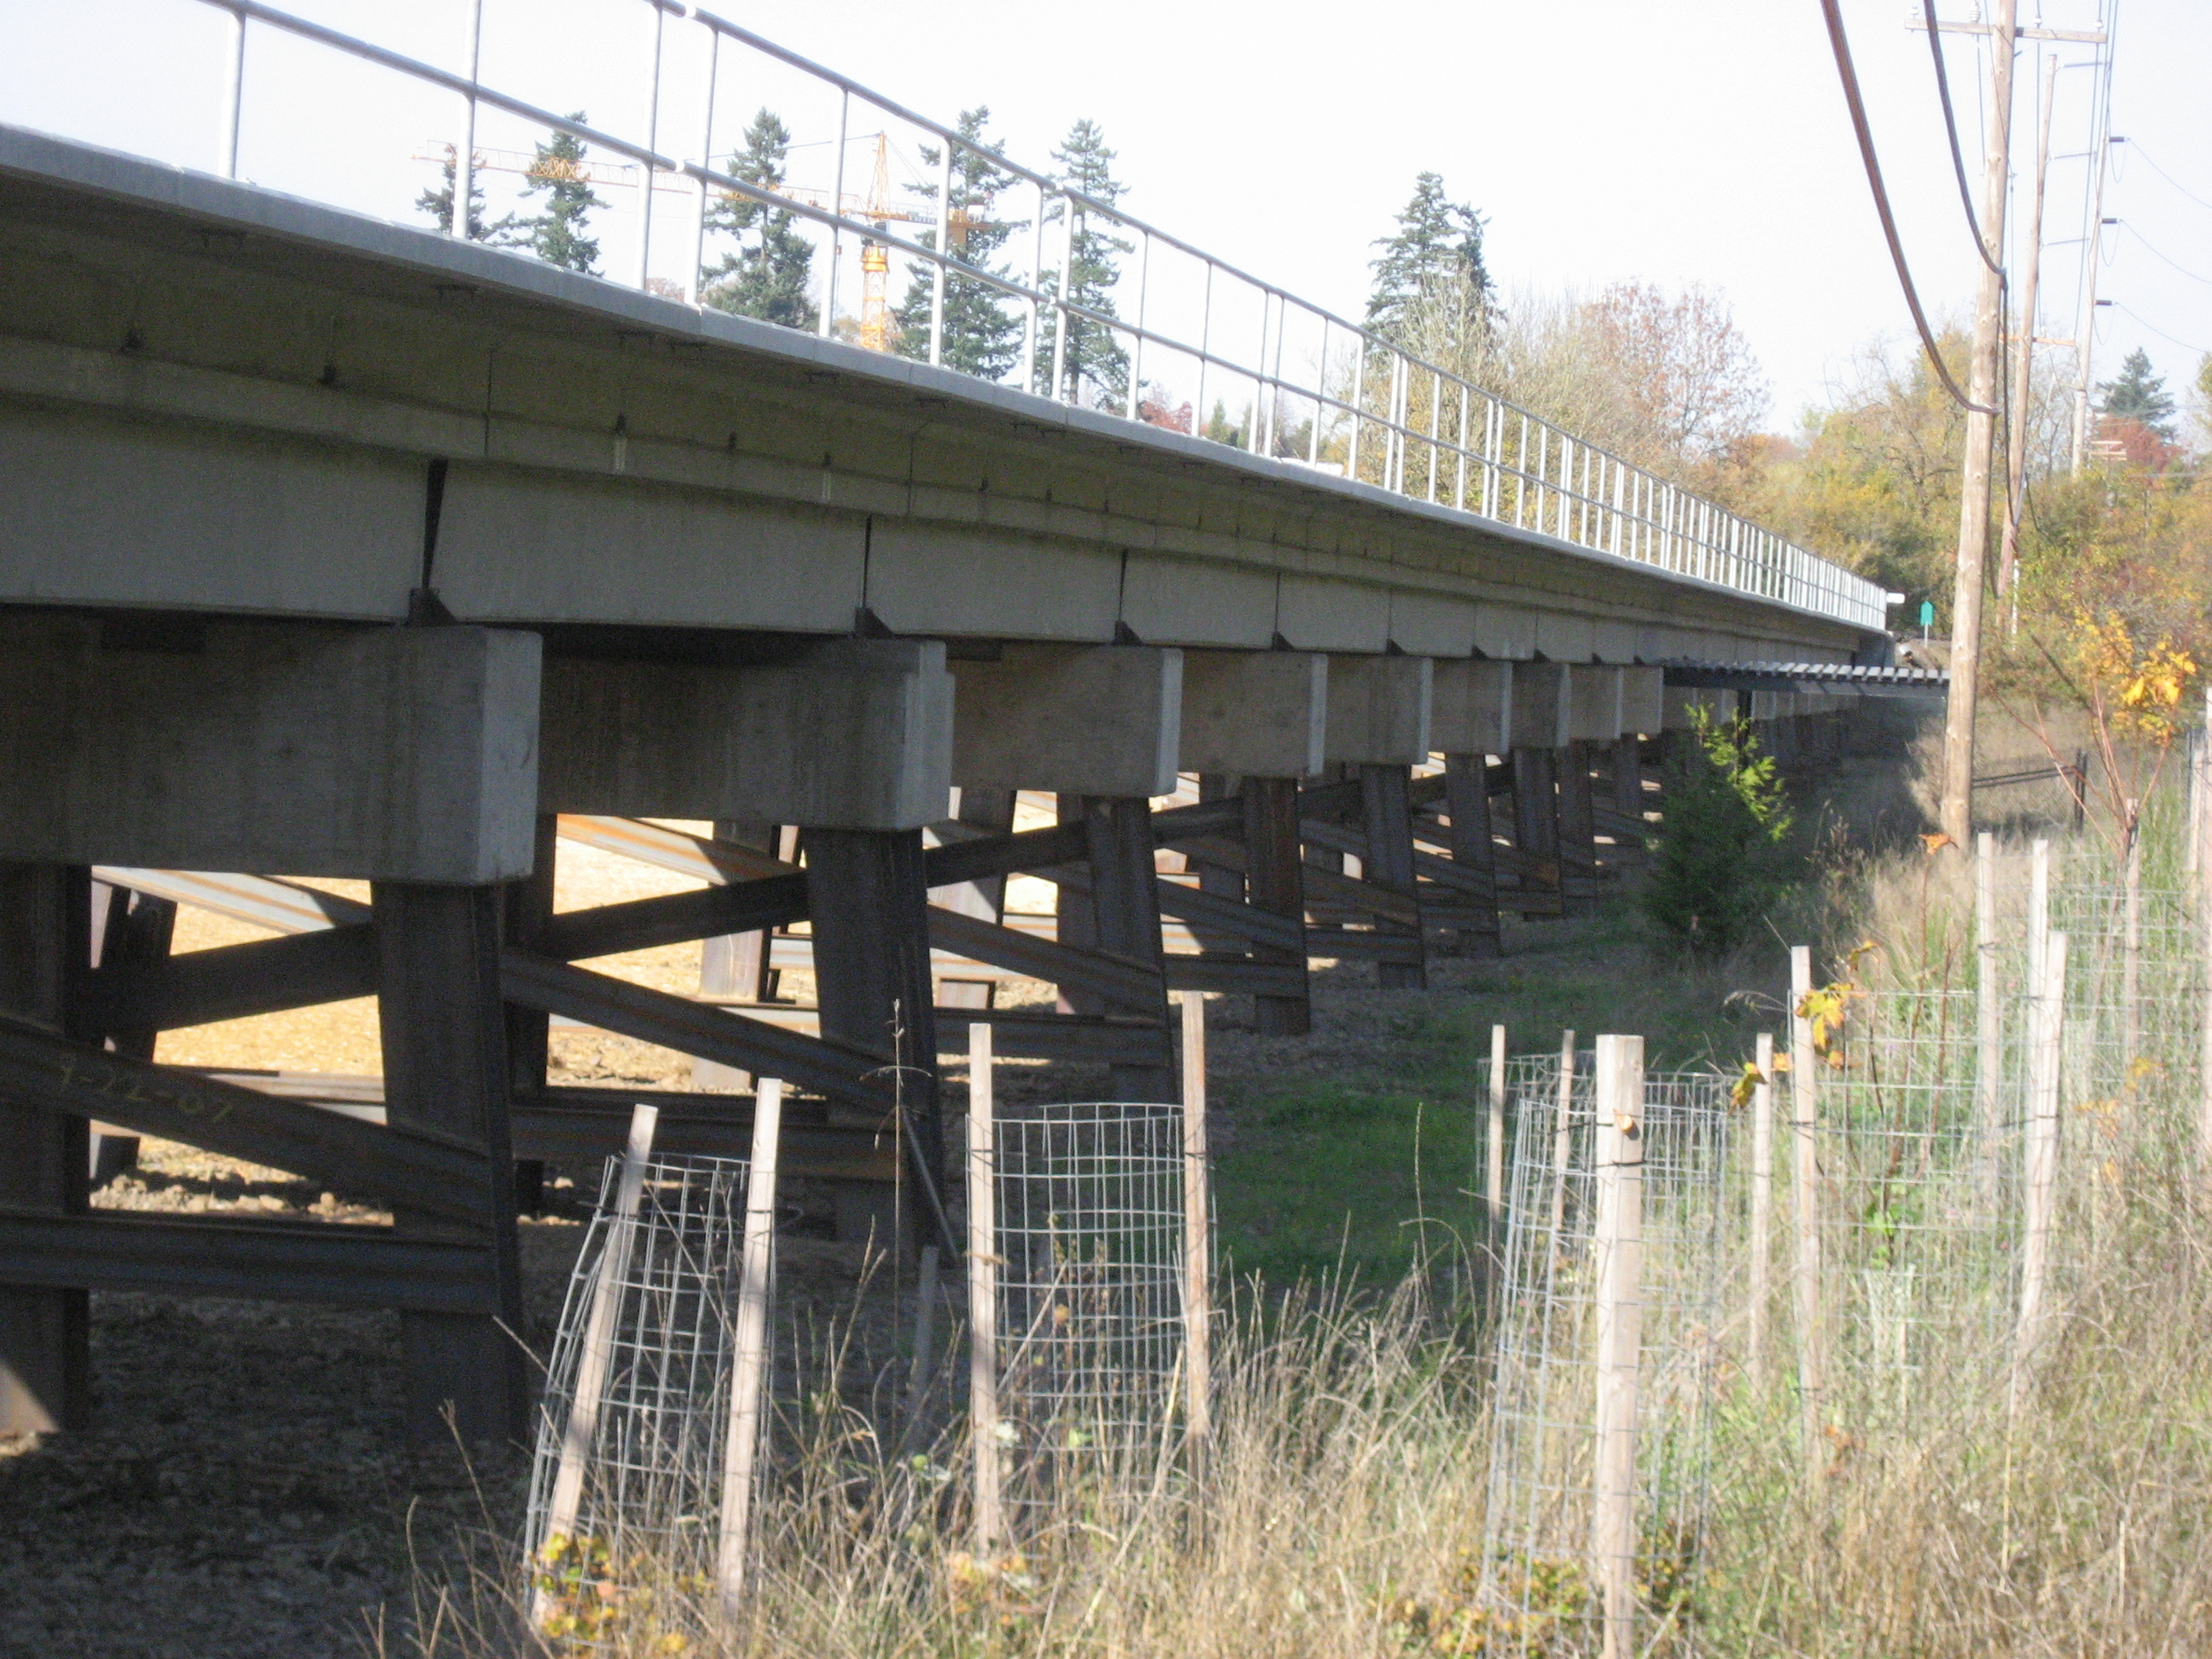 Tualatin River N Approach Rail.JPG